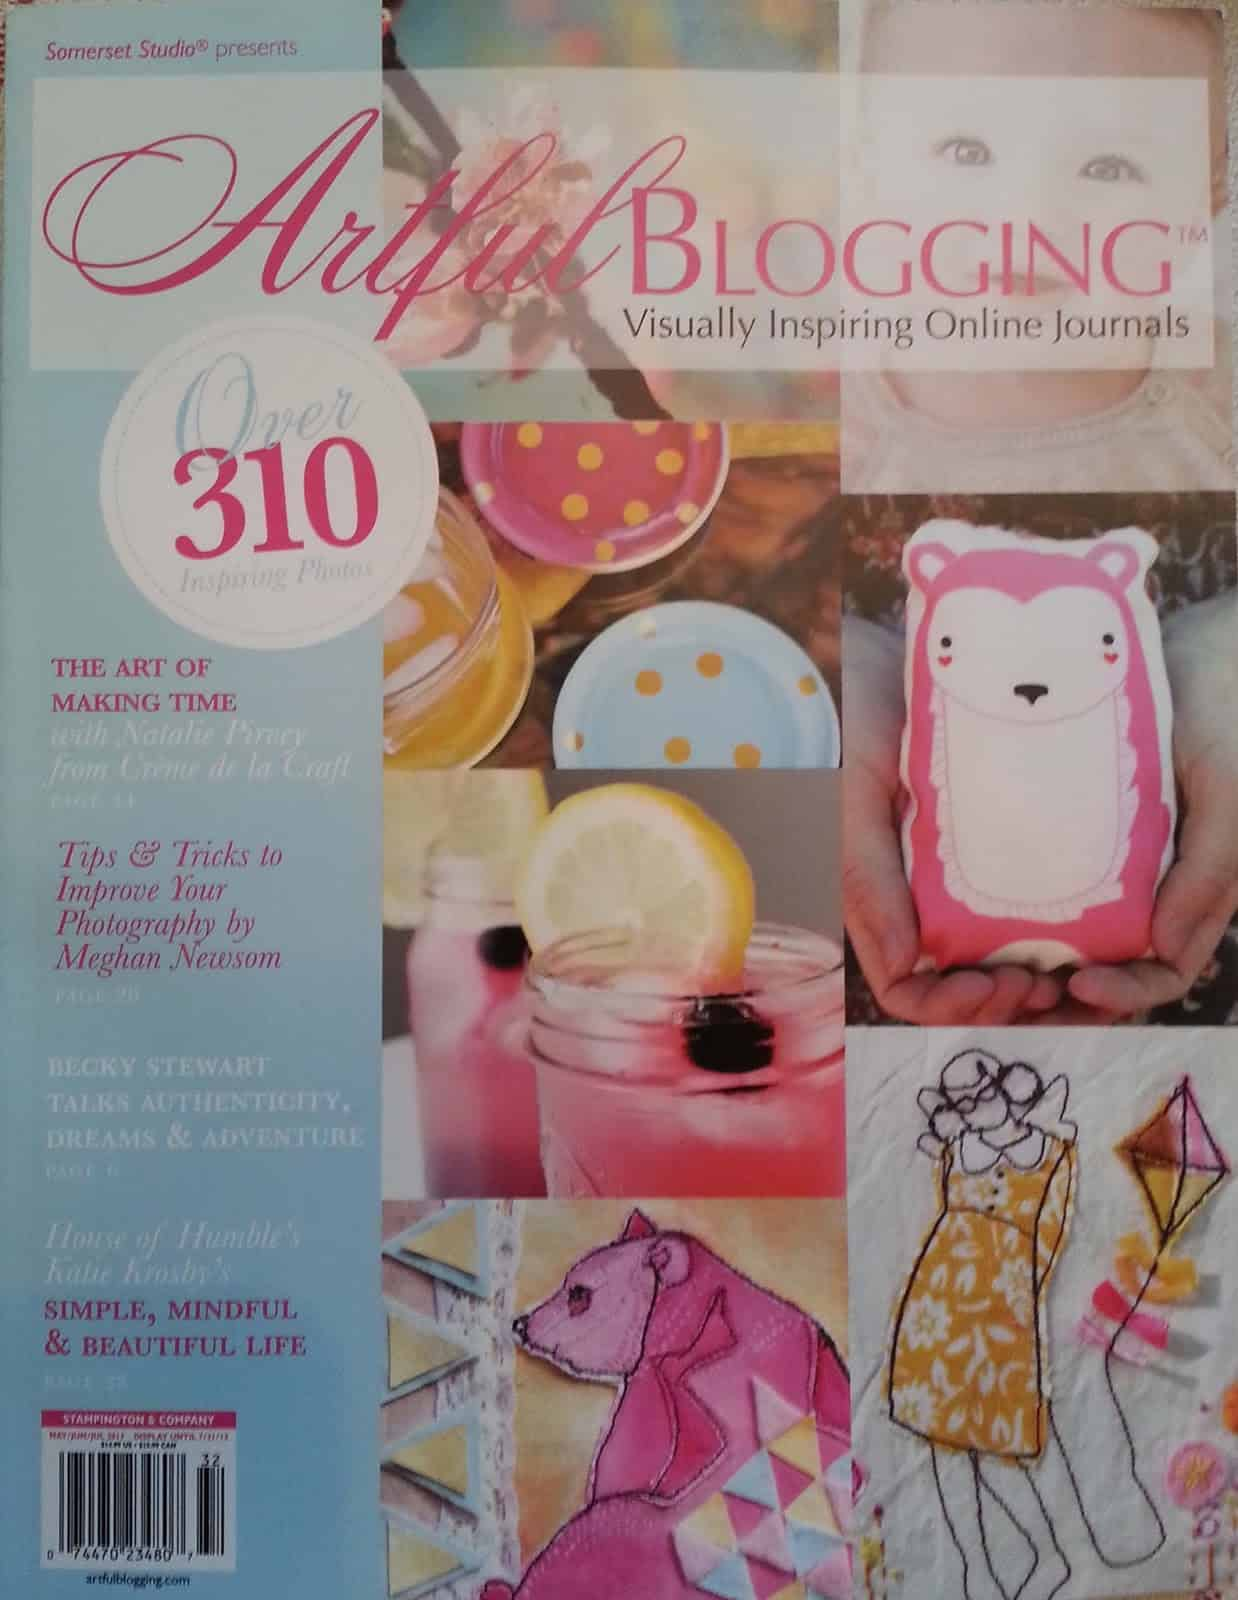 Artful Blogging featuring Cedar Hill Ranch blog